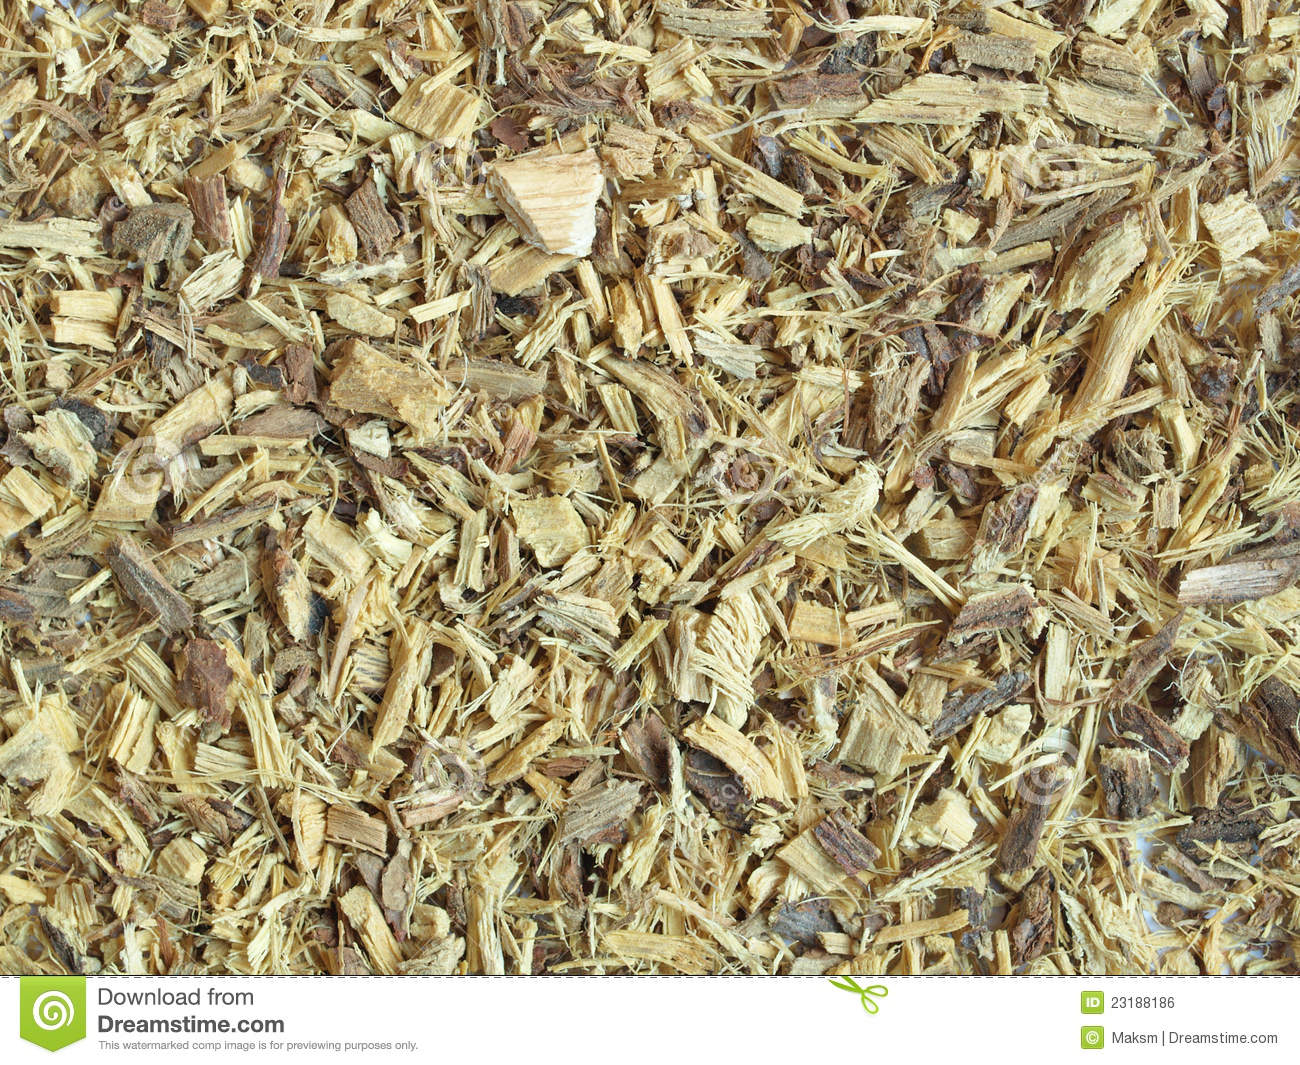 Dried Liquorice (licorice) Root Royalty Free Stock Image.